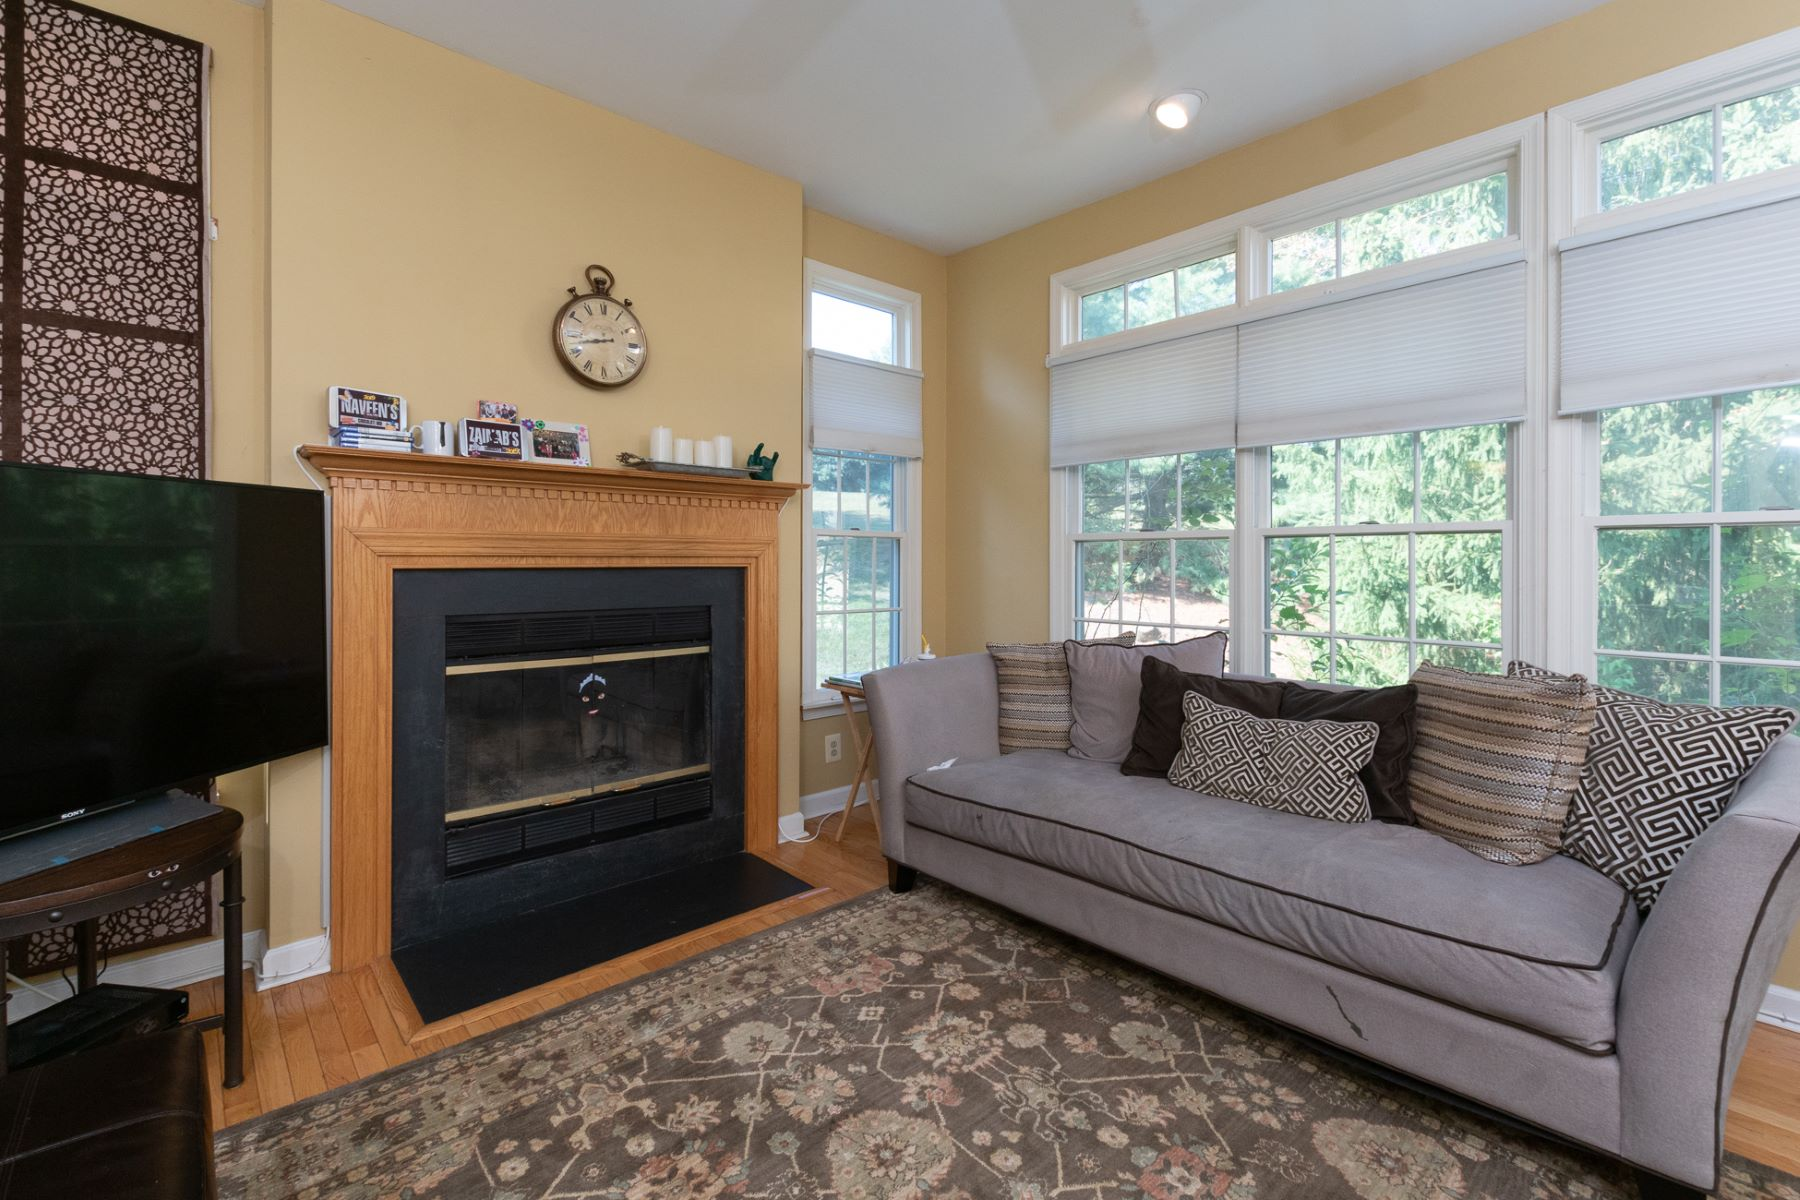 Additional photo for property listing at Spacious Four Bedroom Townhouse in Washington Oaks 47 Wilkinson Way, Princeton, New Jersey 08540 United States